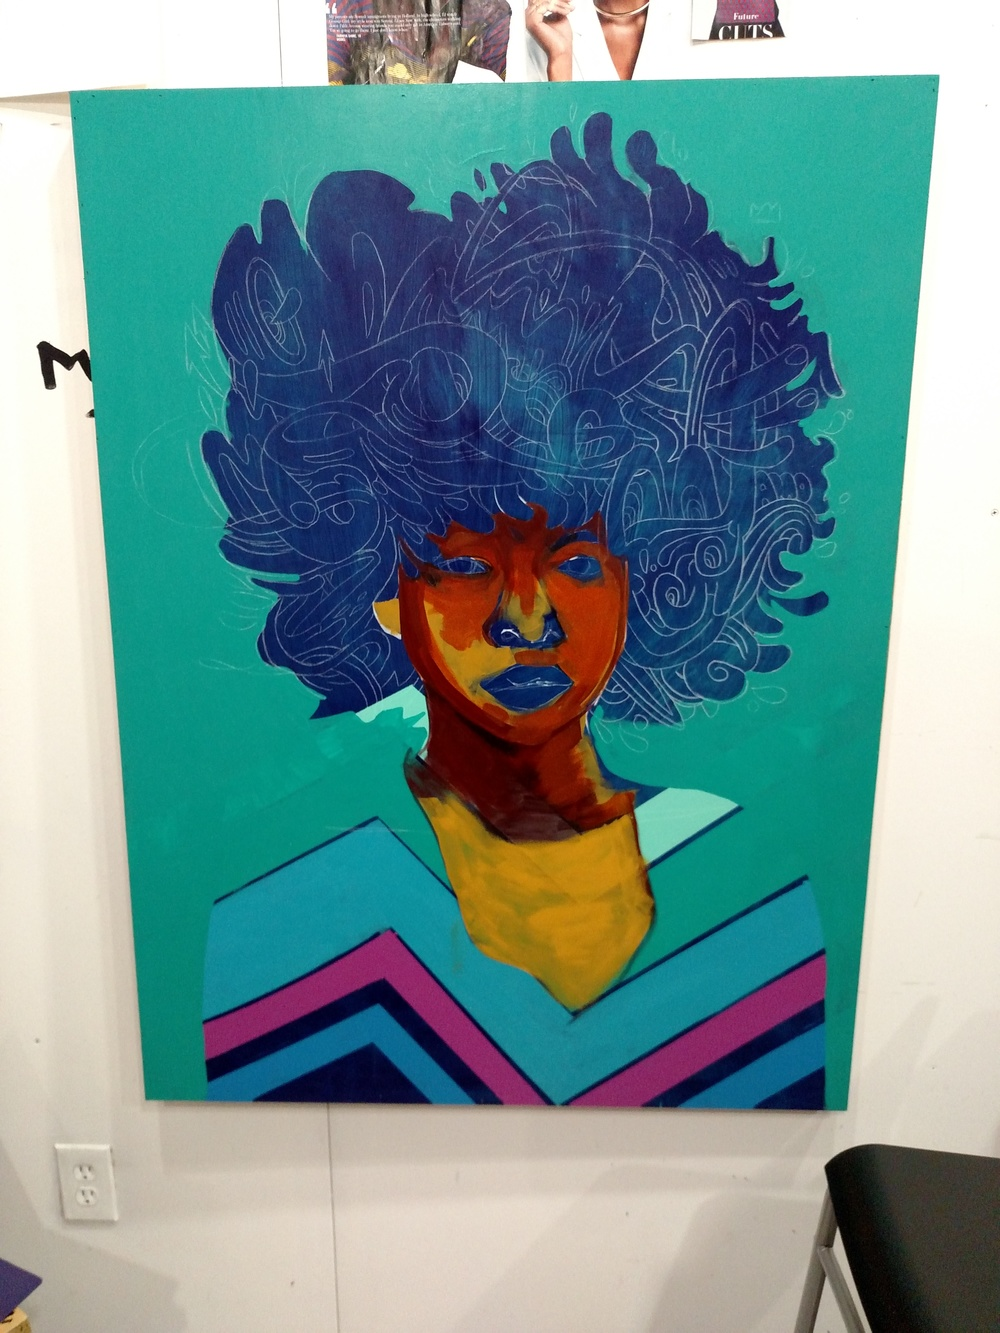 Fro Painting progress pic 2. Jtdanielsart